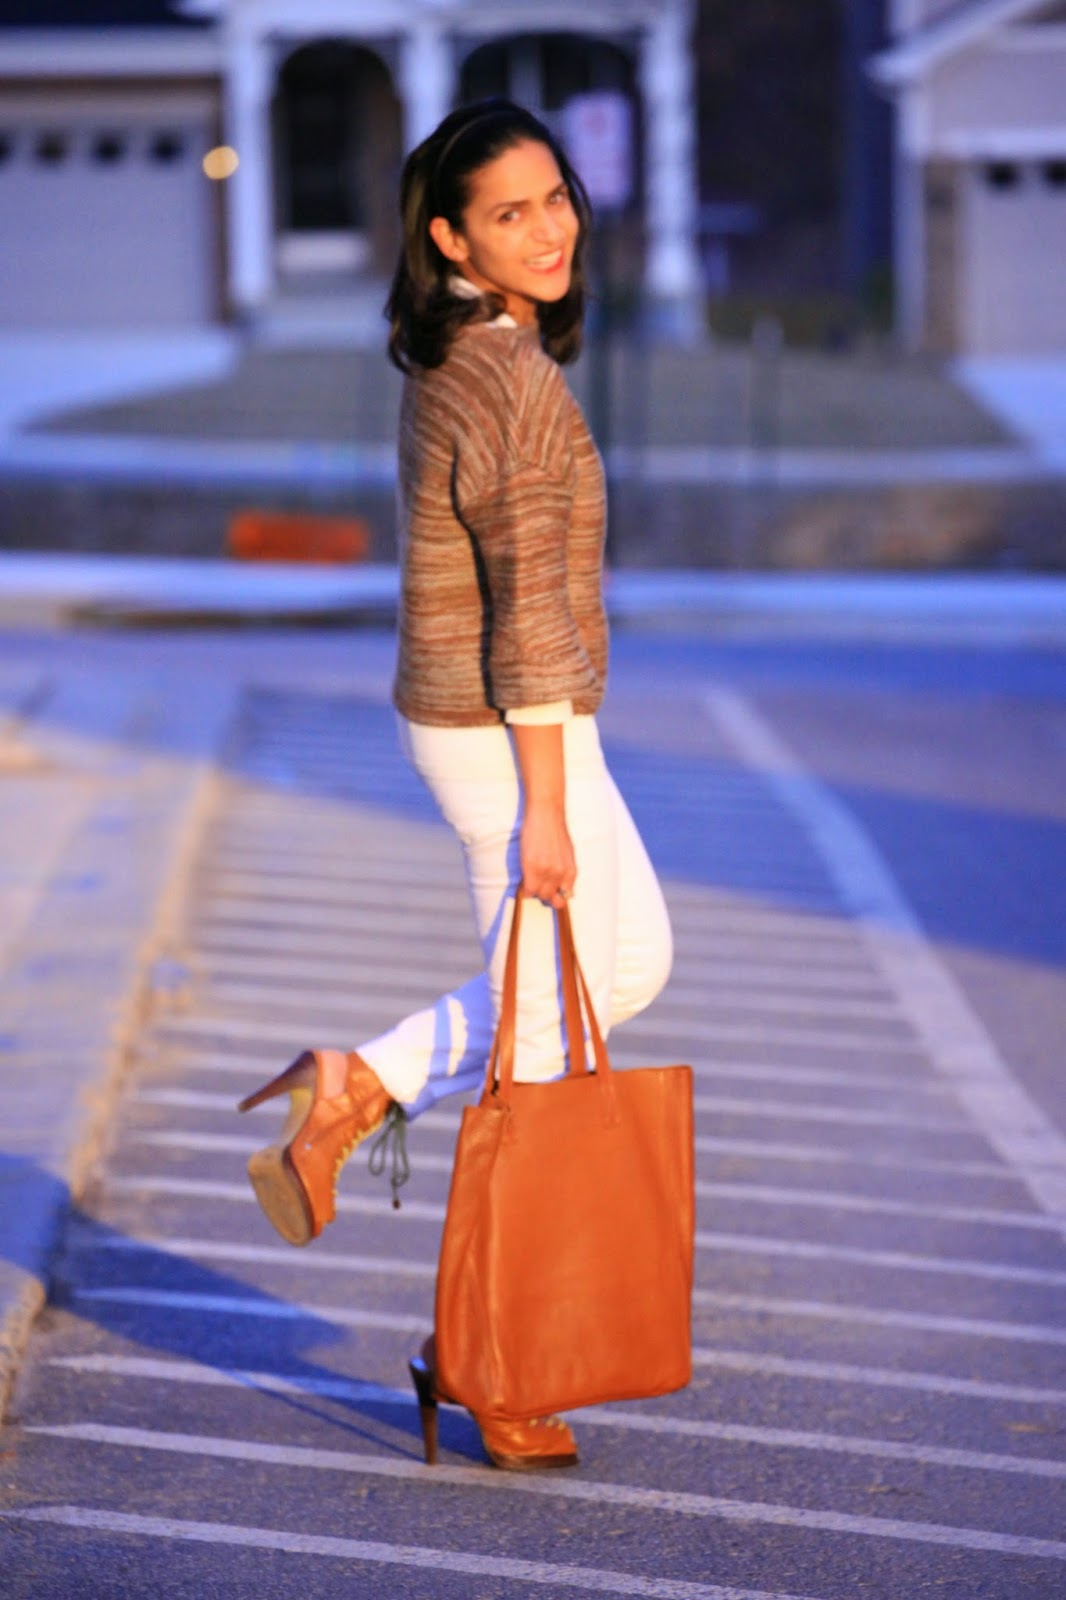 Sweater - GAP Jeans - GAP Shoes - ASOS Bag - Cuyana Tanvii.com